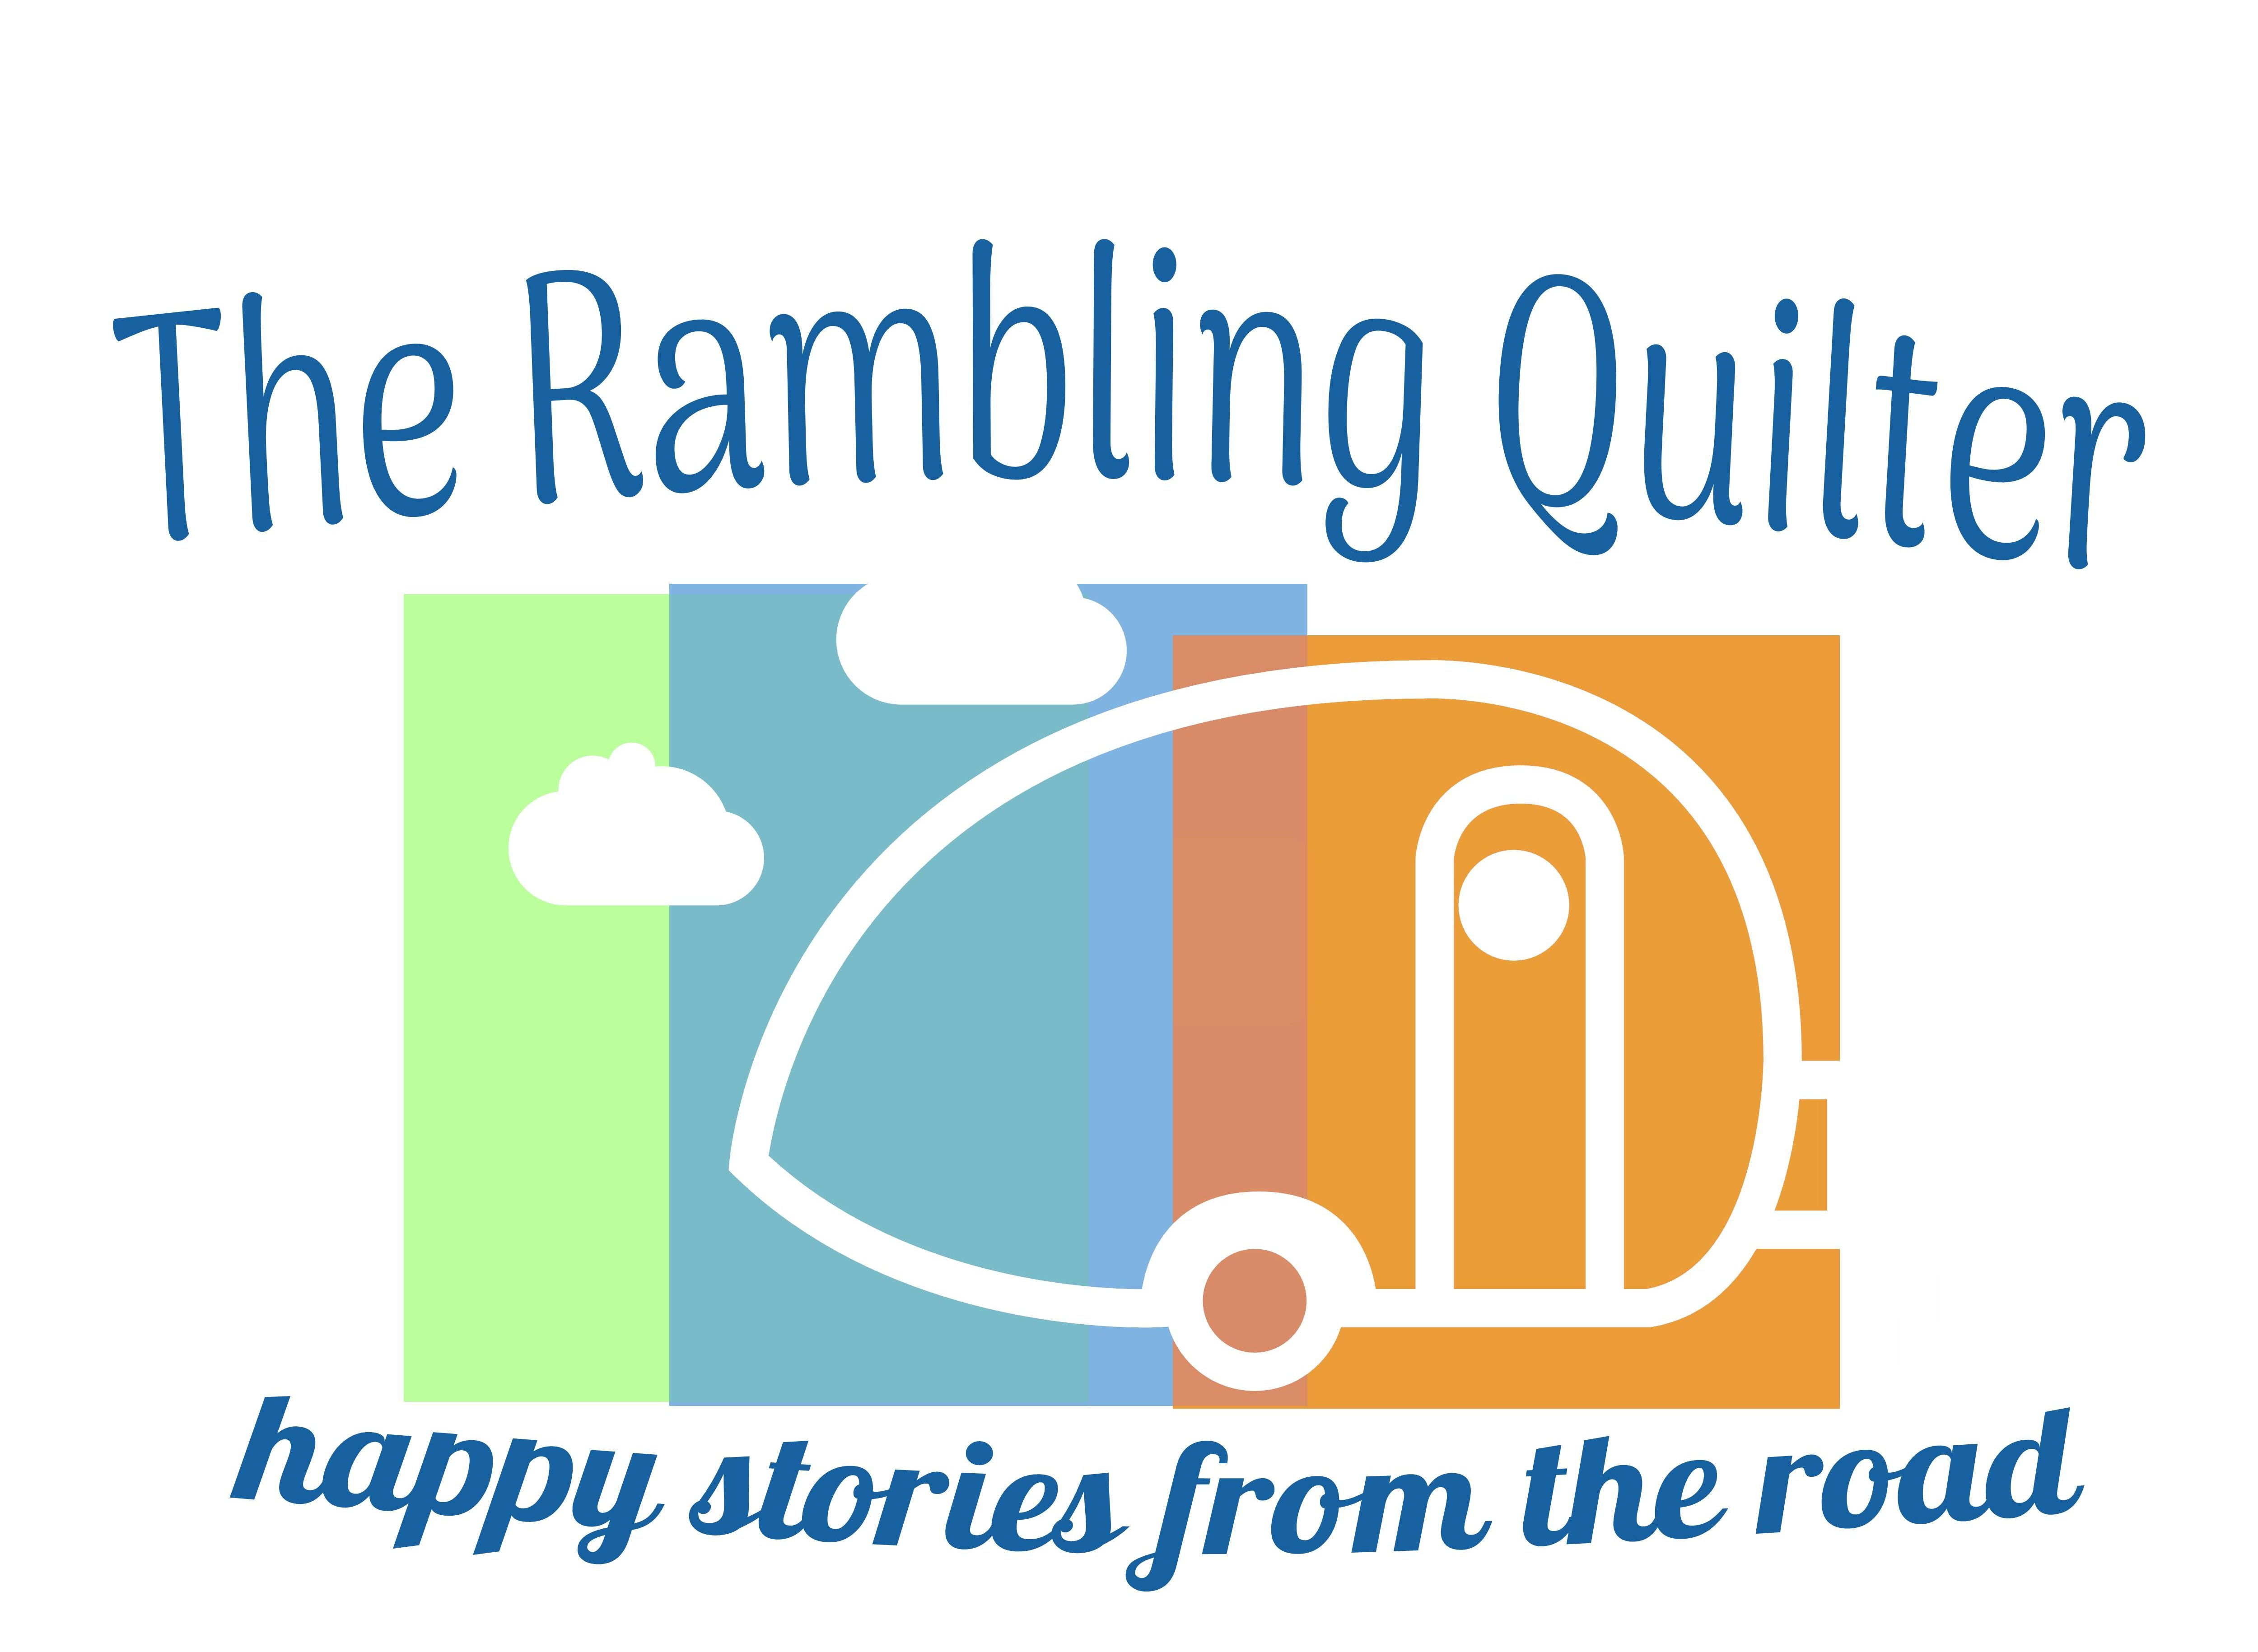 The Rambling Quilter